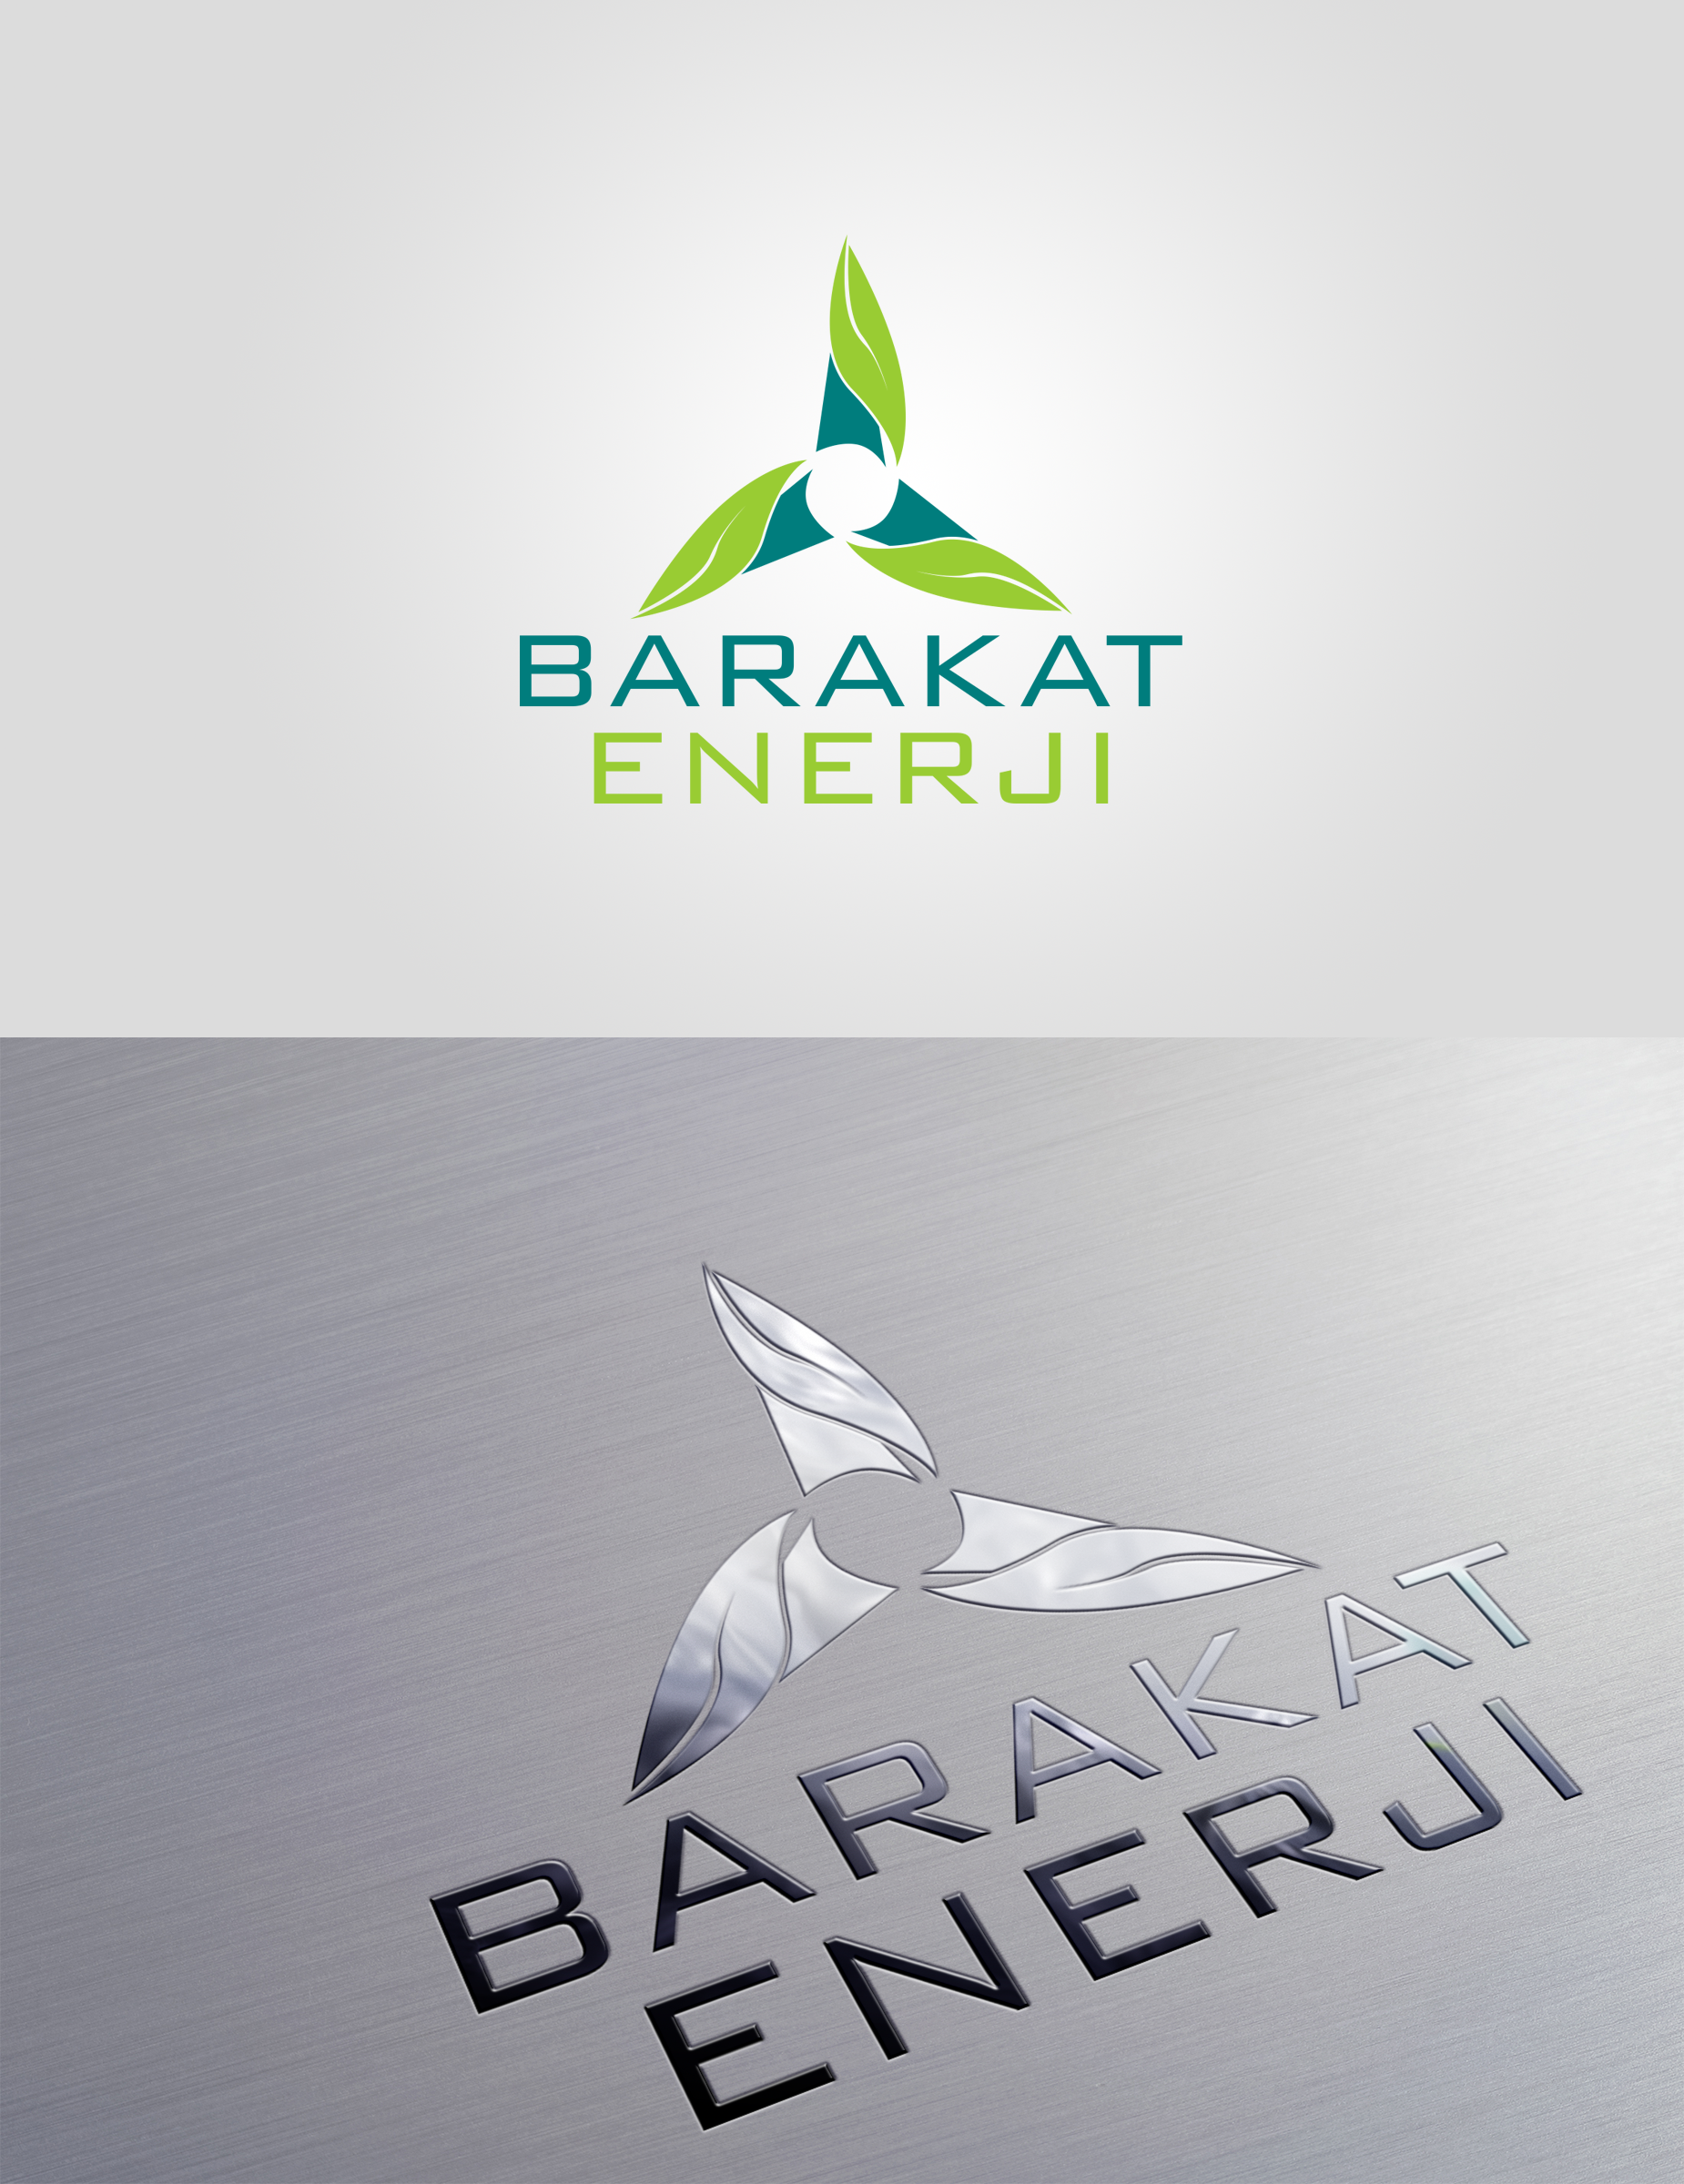 Energy Company Logo Design | Order your Design today from ...